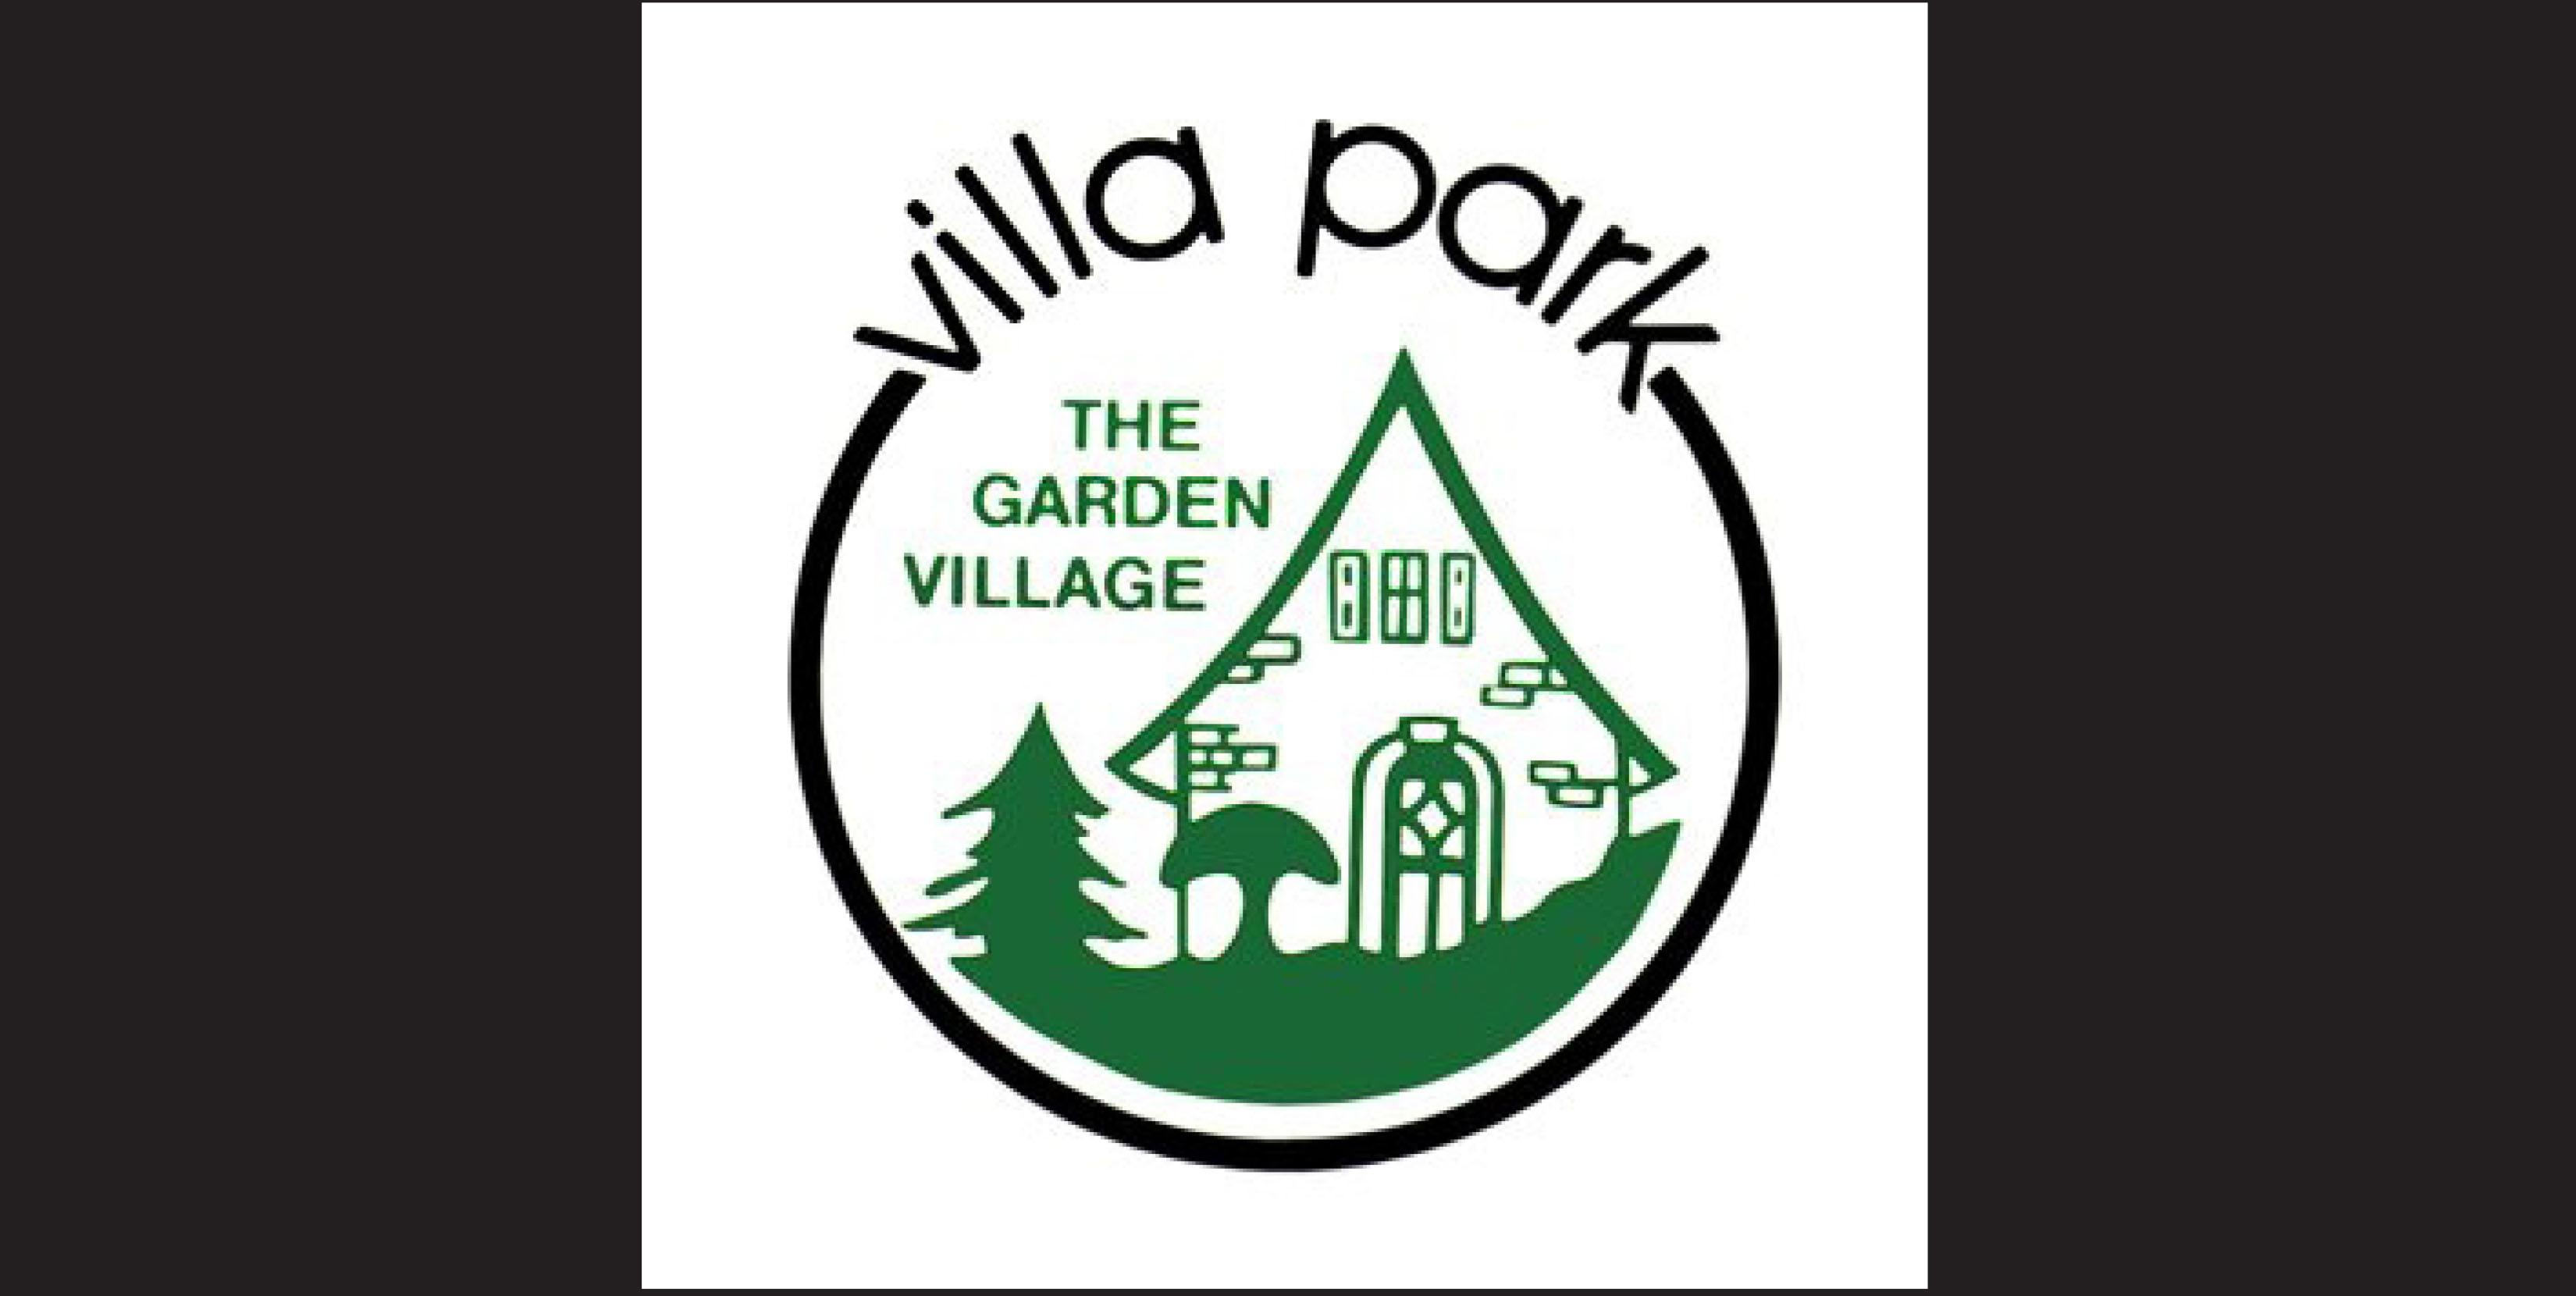 Important note from the Village of Villa Park: Construction to begin on Jackson Pond Overflow Project, leading to road closure on March 23